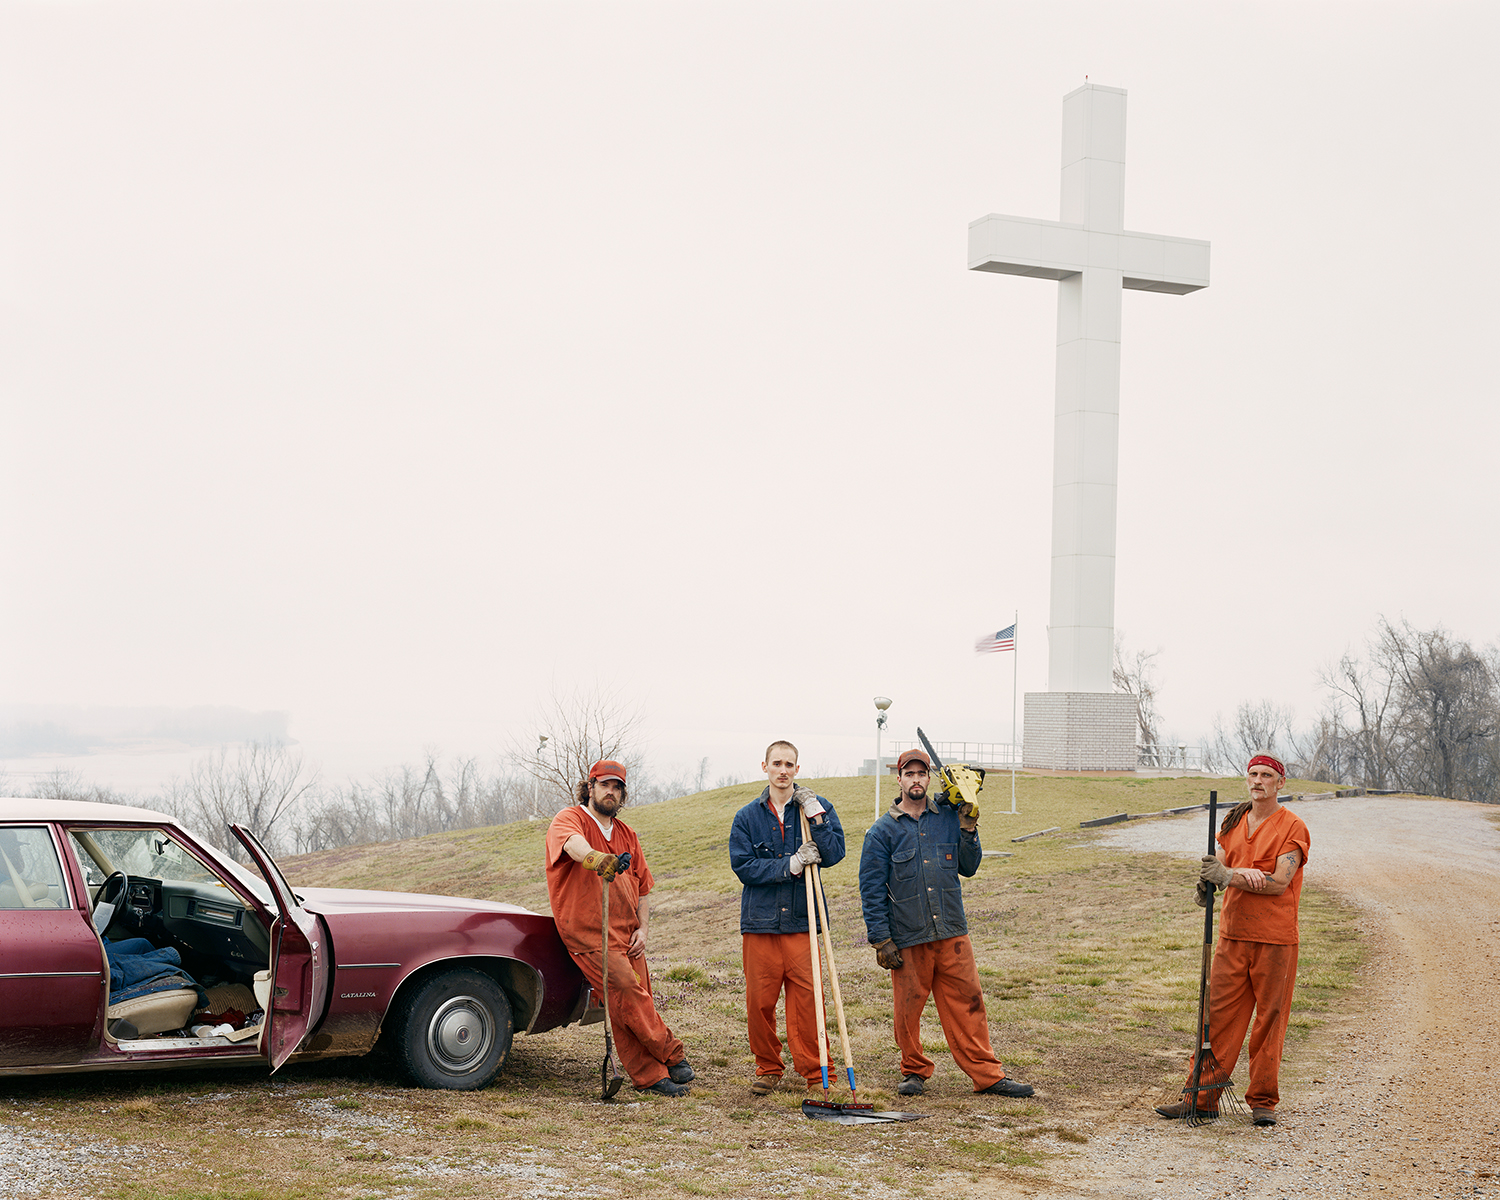 © Alec Soth/Magnum, courtesy Sean Kelly Gallery, New York; Beetles + Huxley, London; and MACK.